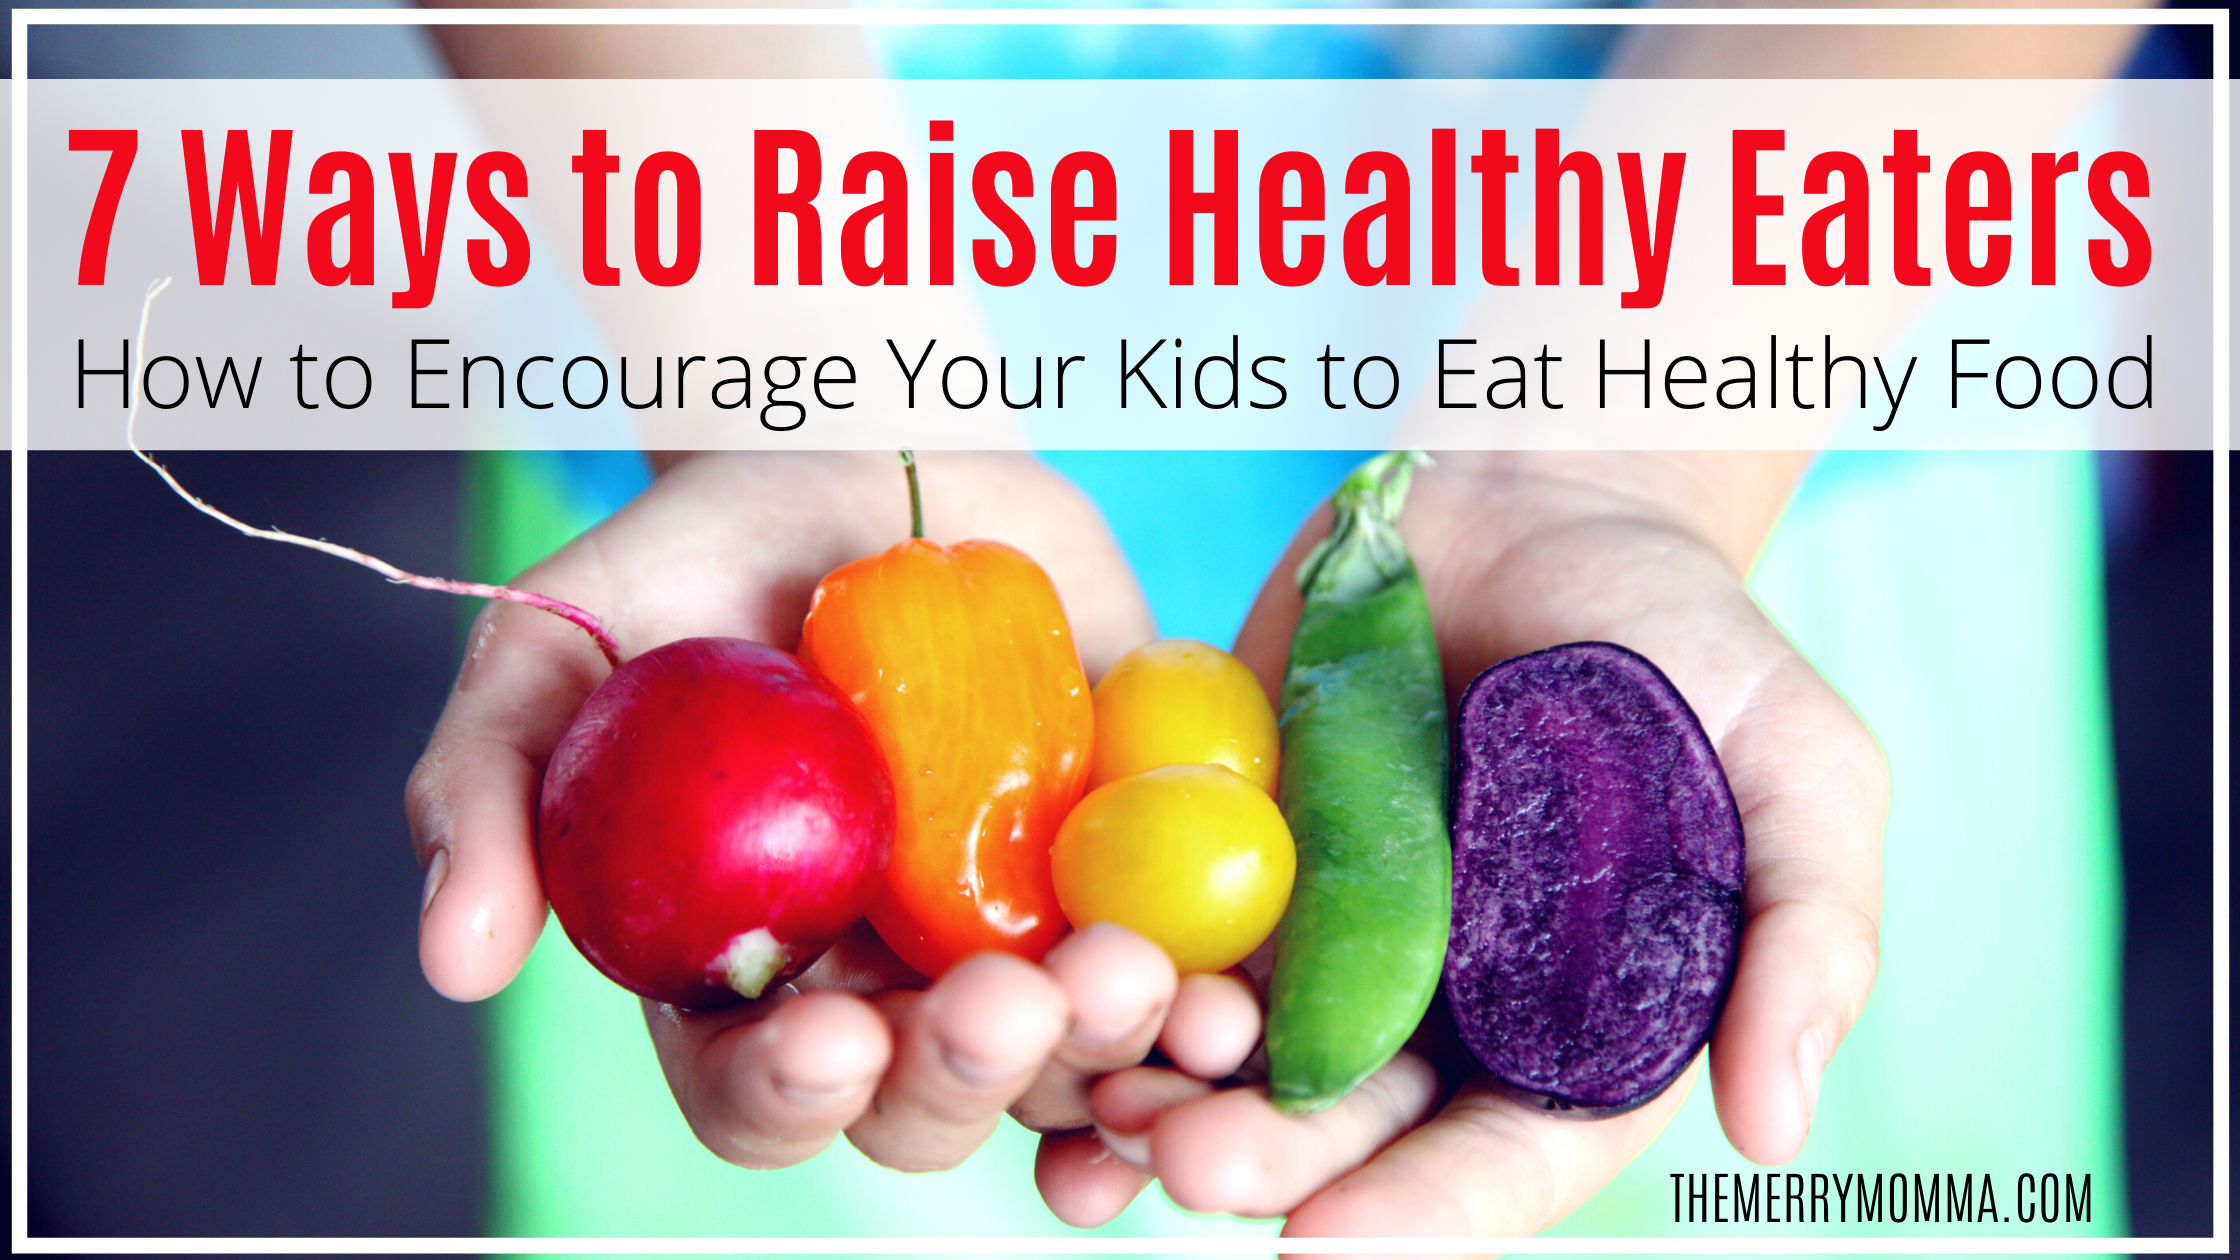 Raise Healthy Eaters | Get your kids to eat healthy food